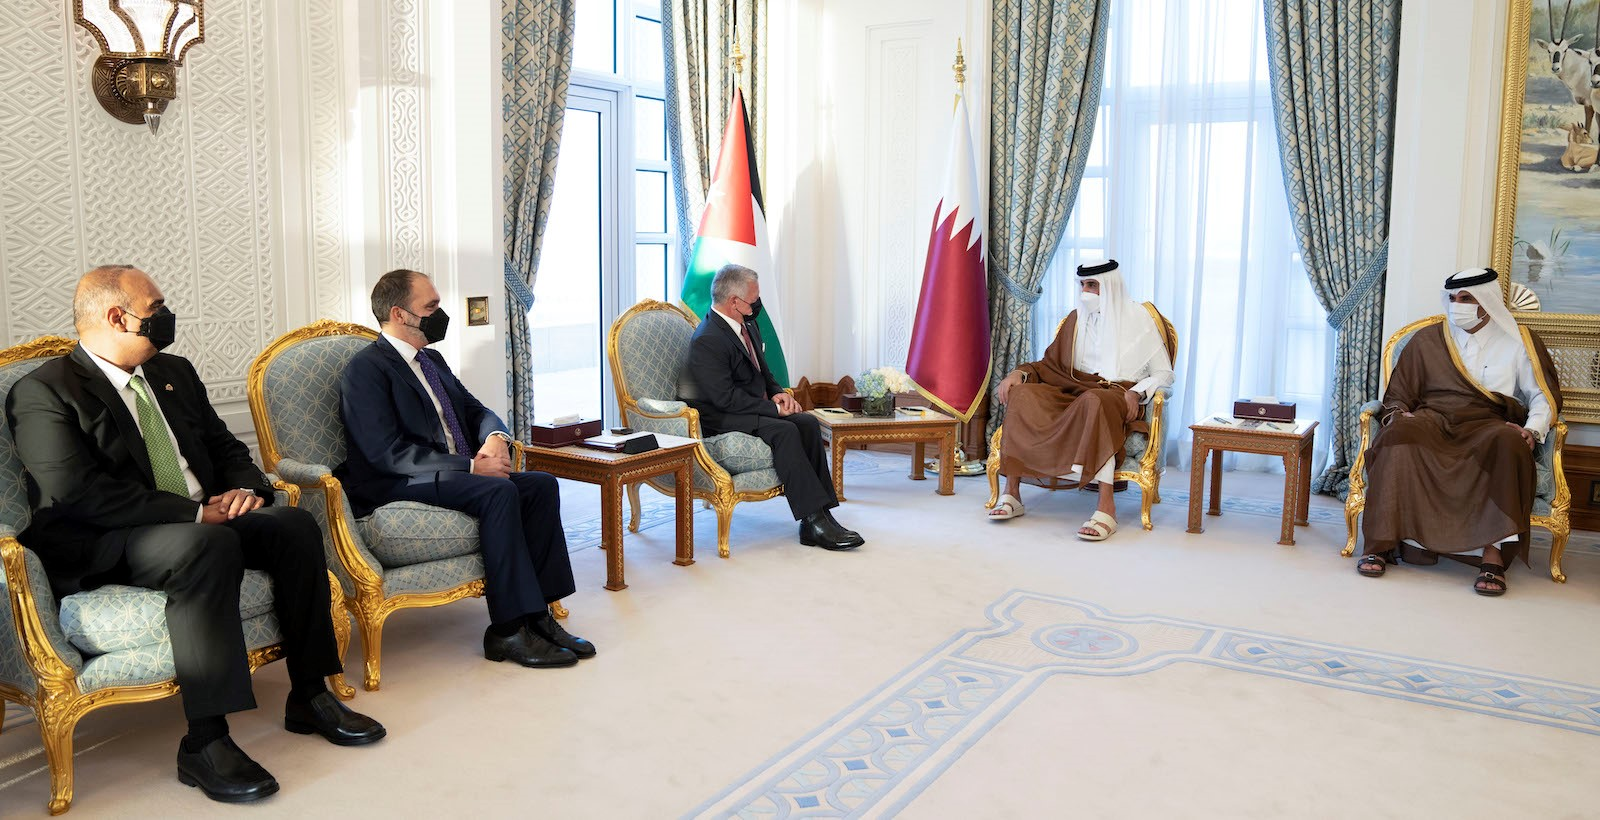 HH the Amir, King of Jordan Hold Official Talks Session